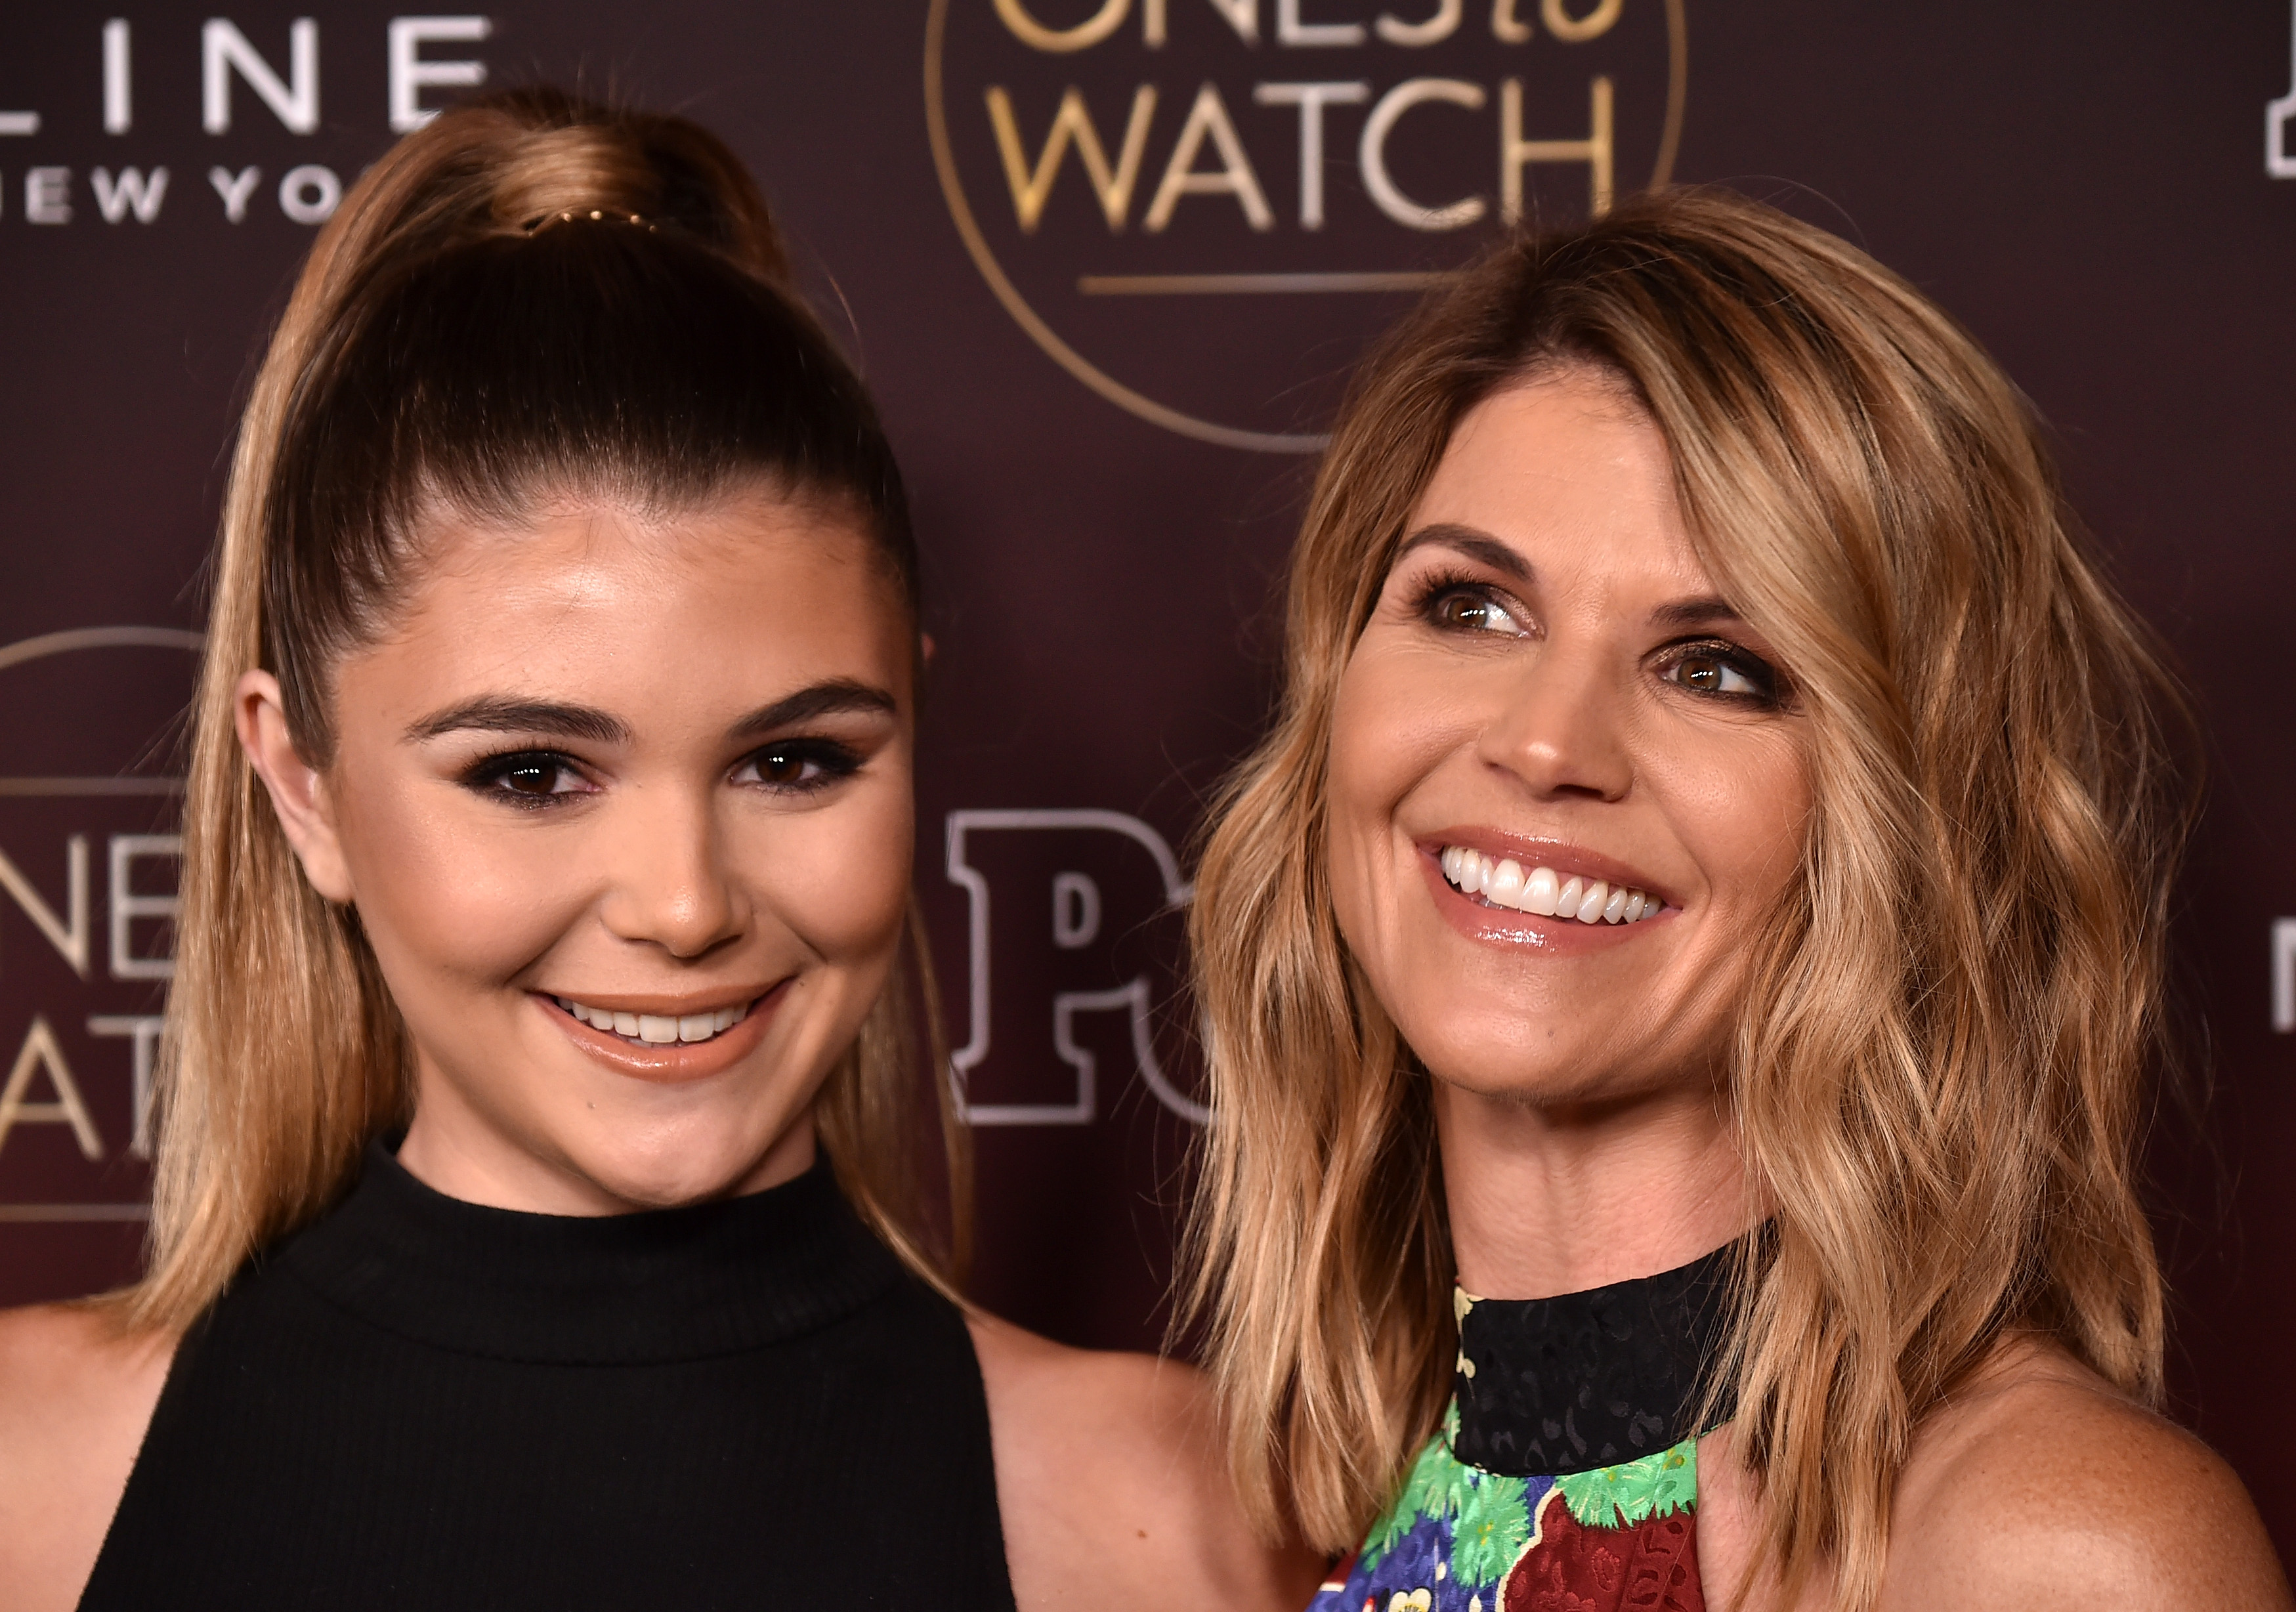 Olivia Jade and Lori Loughlin attend People's 'Ones To Watch' at NeueHouse Hollywood on October 4, 2017 in Los Angeles, California. (Getty Images)